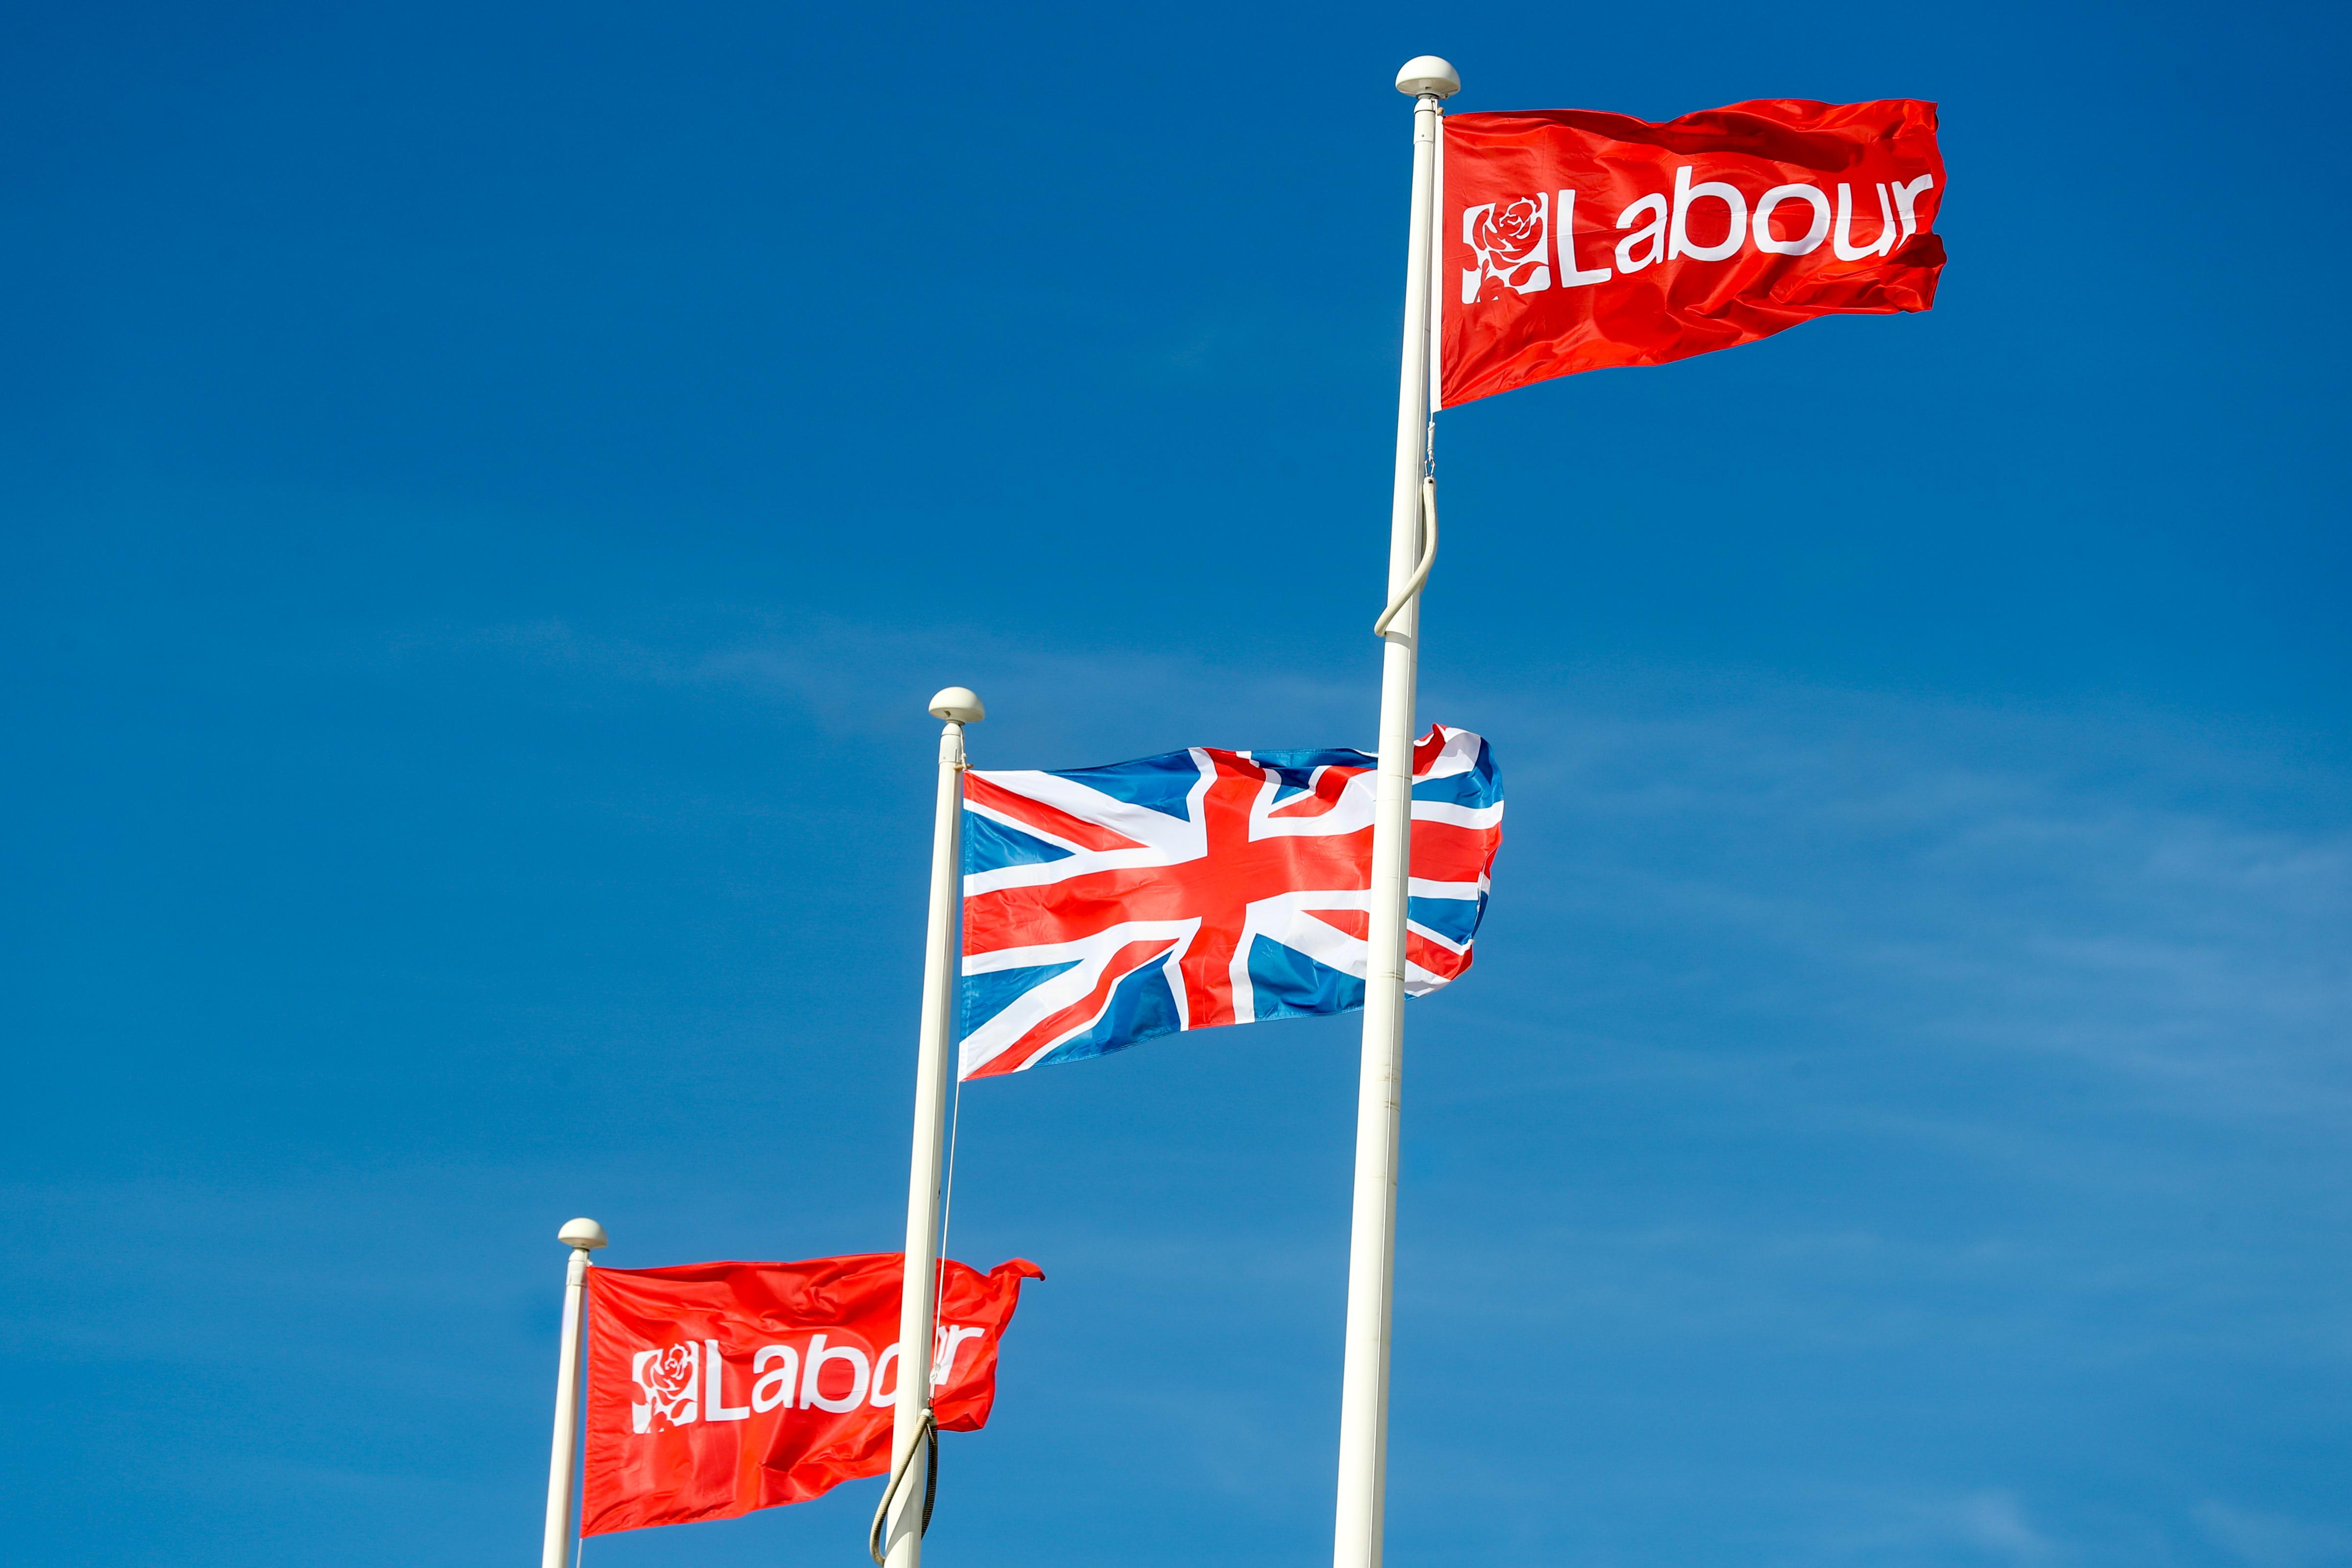 Labour Party and Union Jack Flag